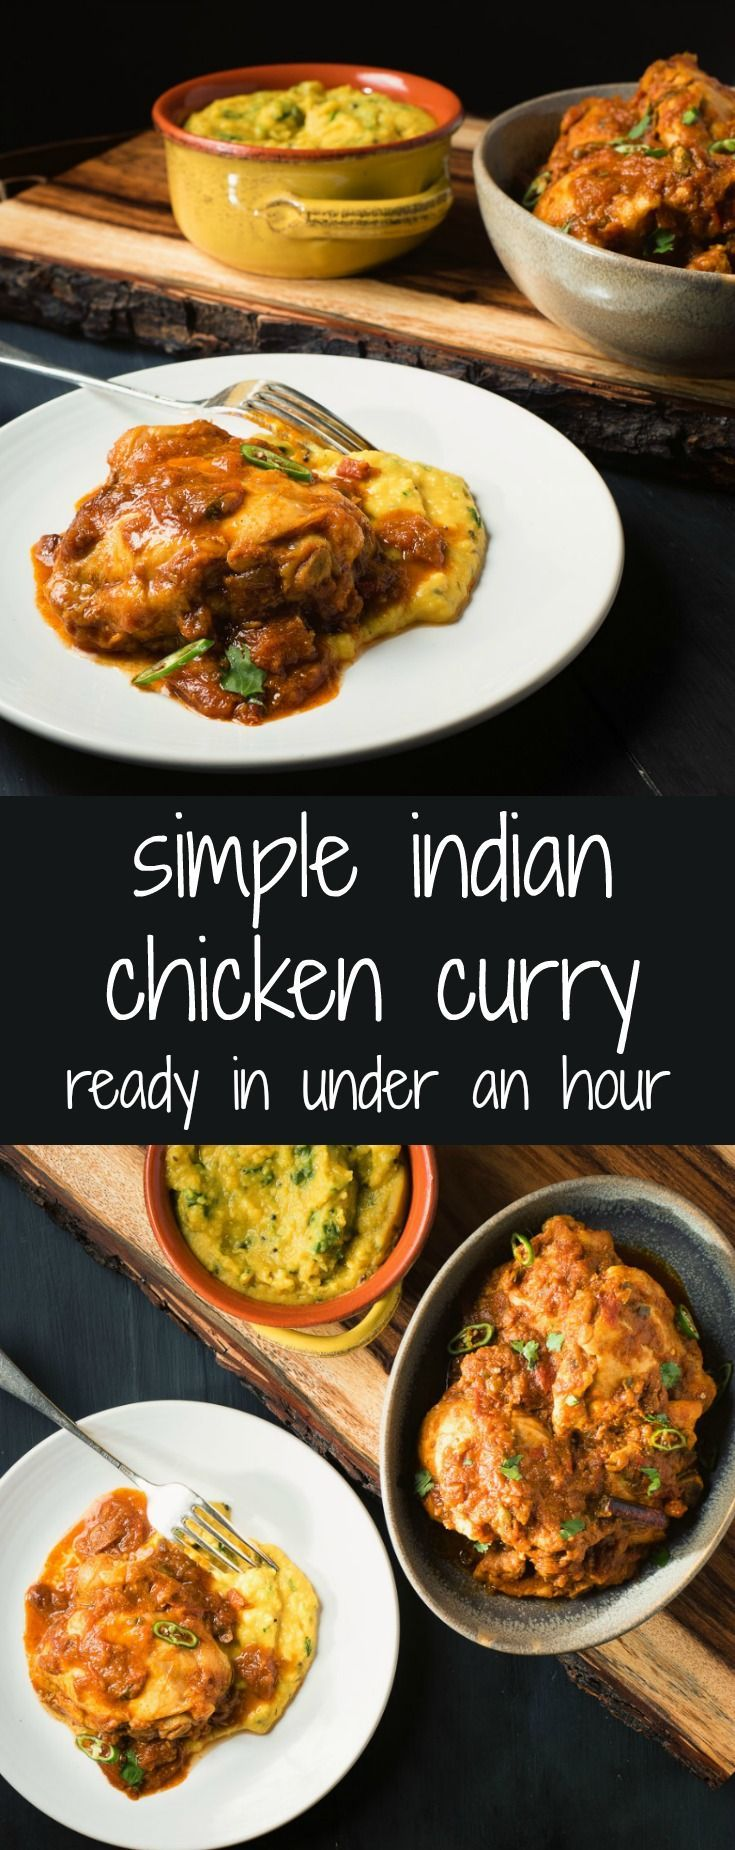 Loaded with Indian flavours, you can make this simple chicken curry in under an hour.